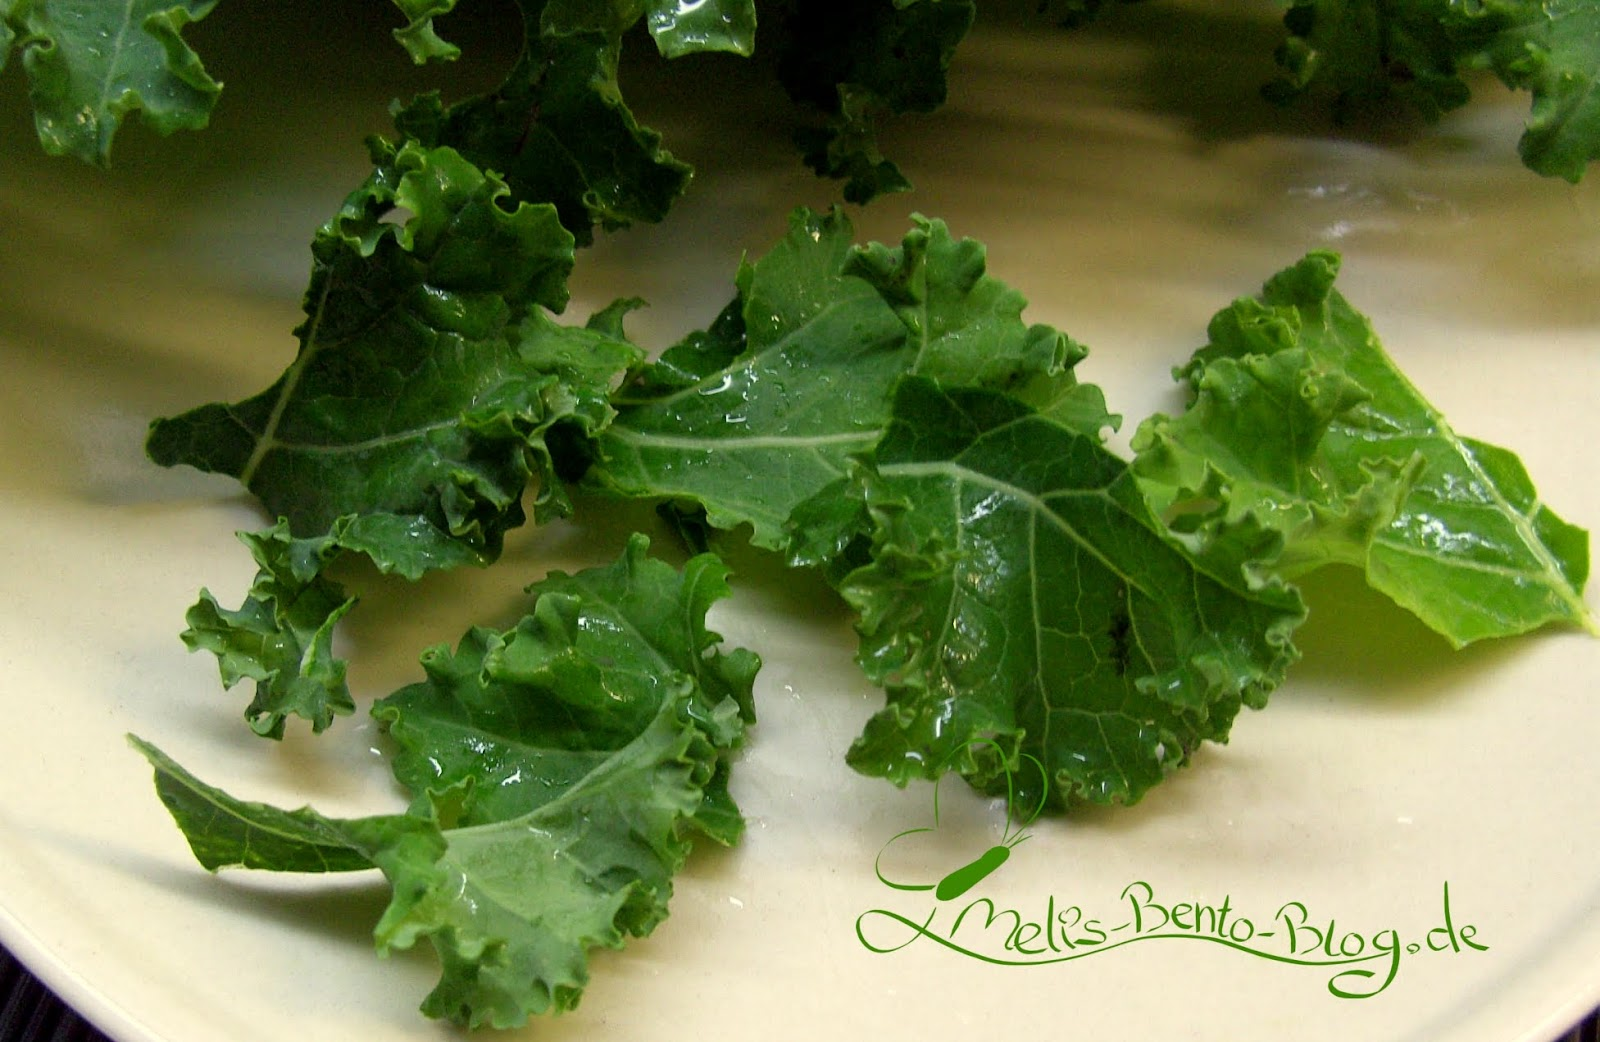 melis bento blog rezept 32 kale chips gr nkohl chips. Black Bedroom Furniture Sets. Home Design Ideas